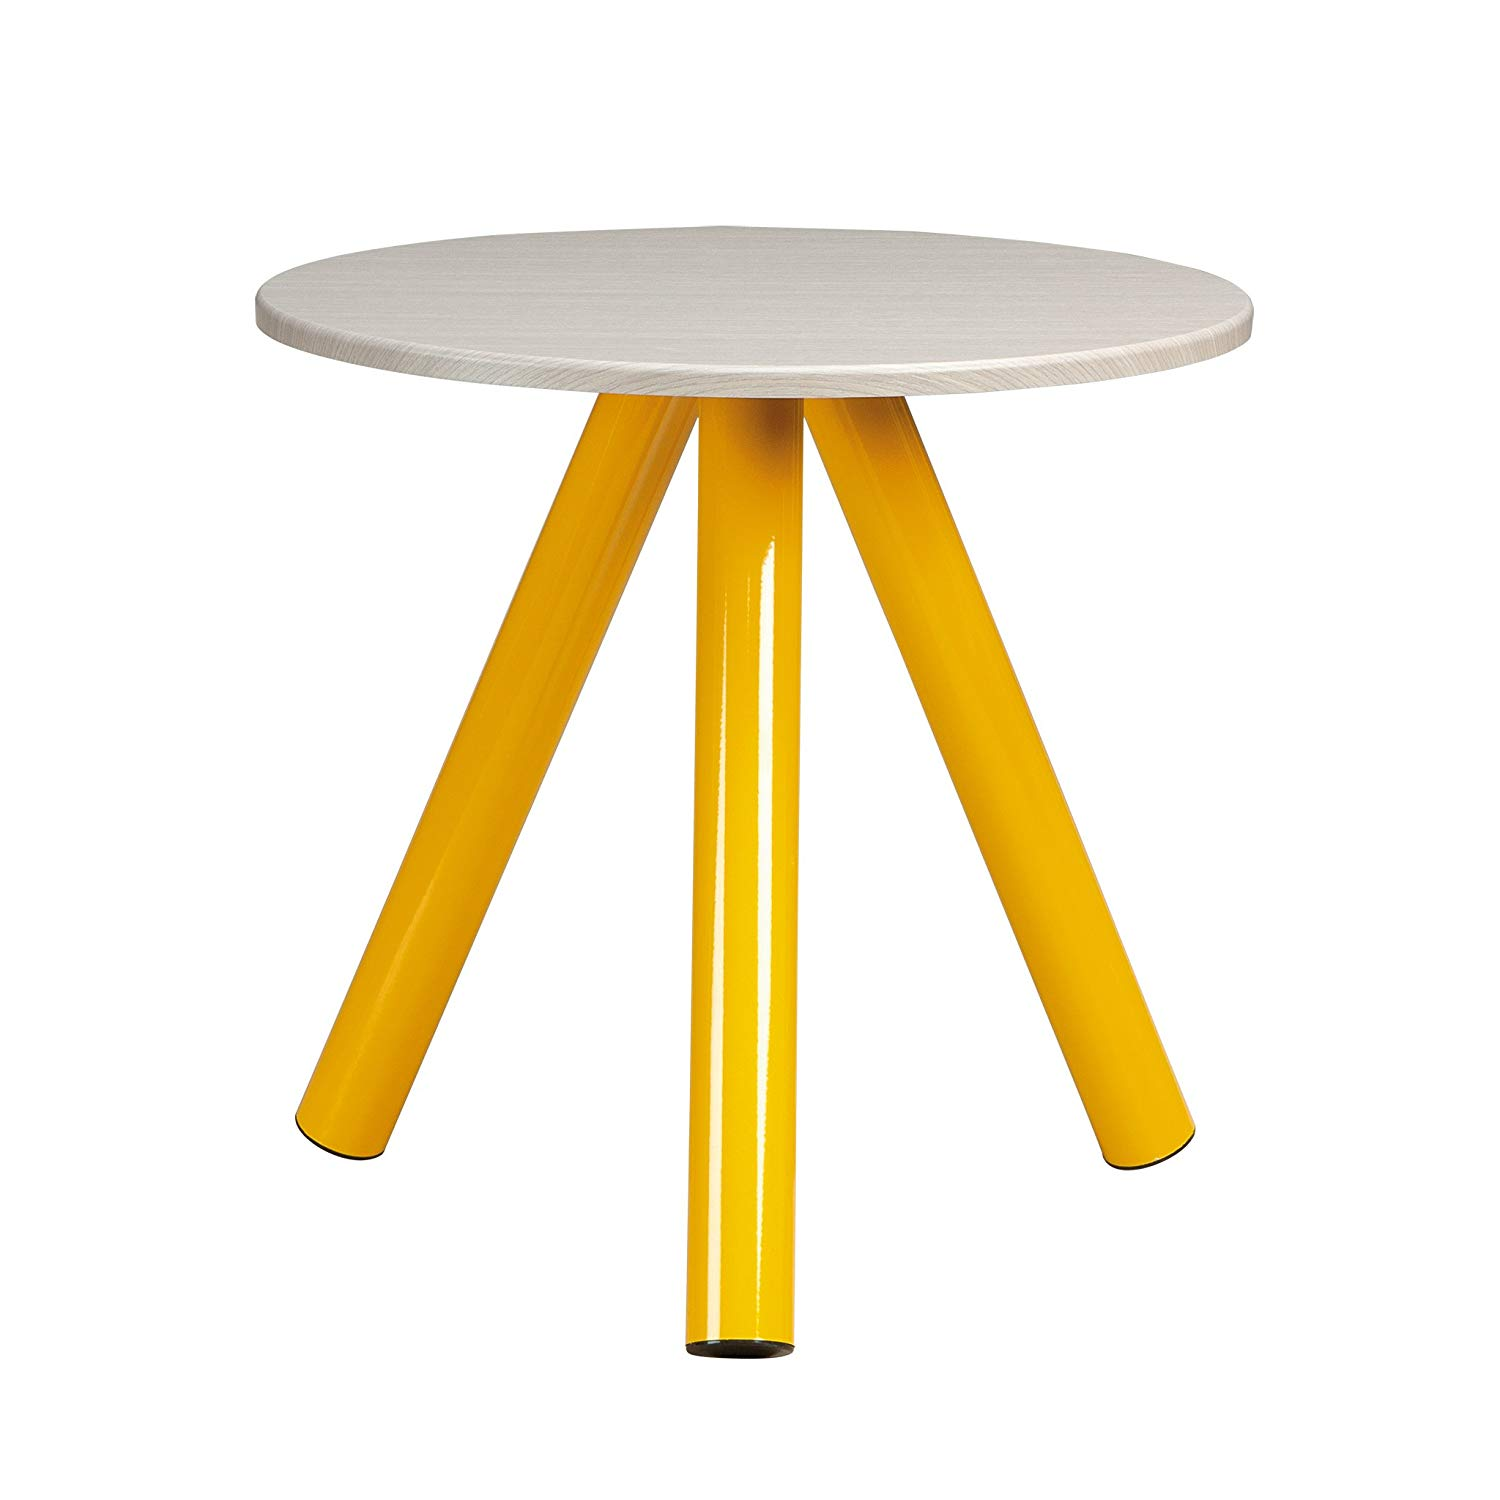 sauder soft modern side table yellow outdoor accent saffron finish kitchen dining metal patio tables pilgrim furniture target desks and chairs leather wood one drawer threshold